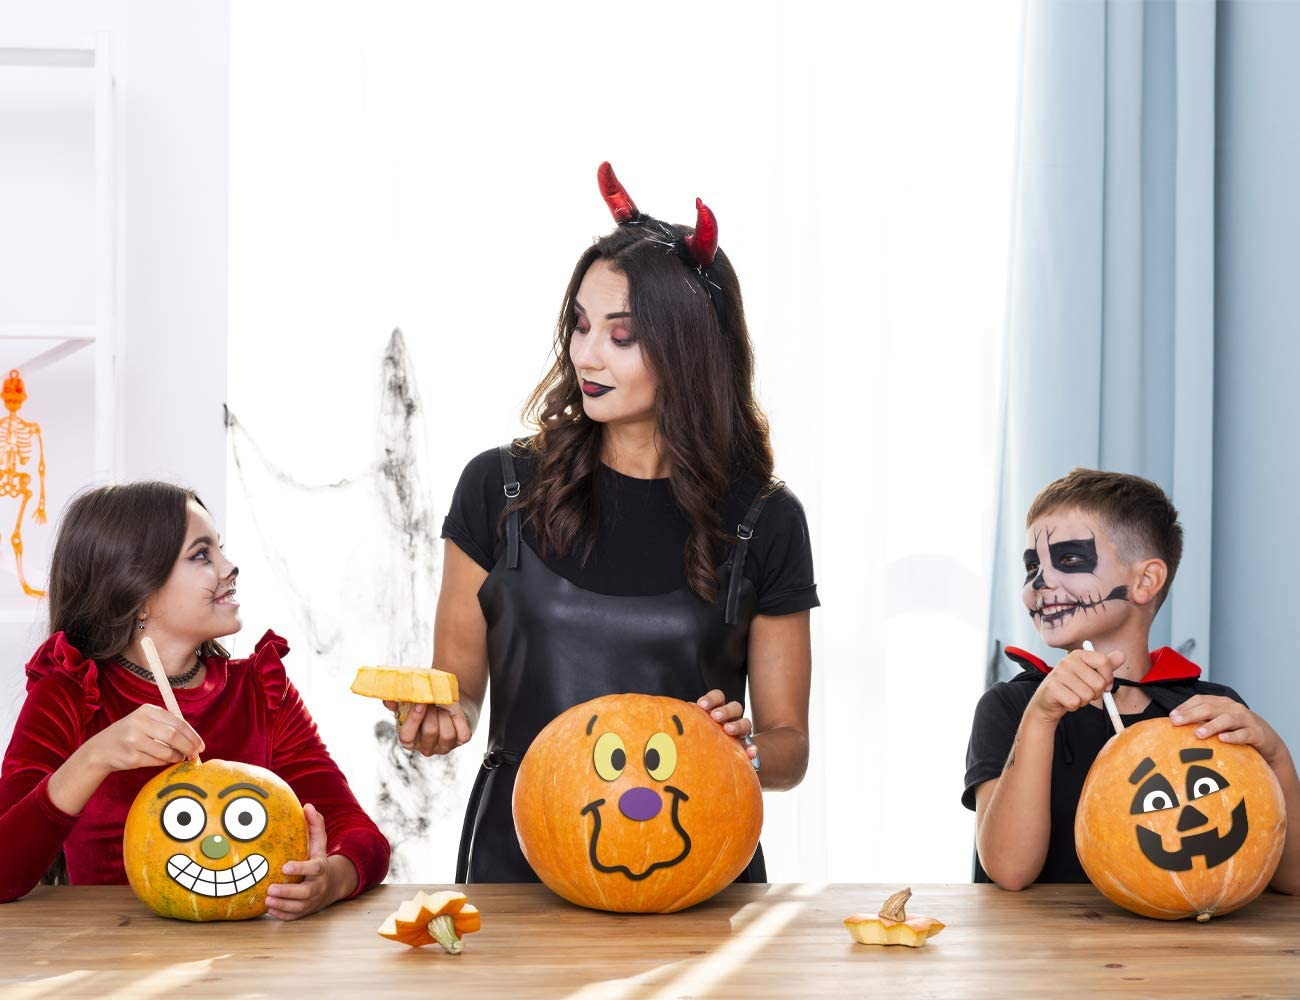 KIDPAR 82Pcs Halloween Pumpkin Stickers Make Your Own Jack-O-Lantern Face Decals for Halloween Party Decoration 33 Funny and Classic Pumpkin Expressions Stickers for Pumpkins and Squashes